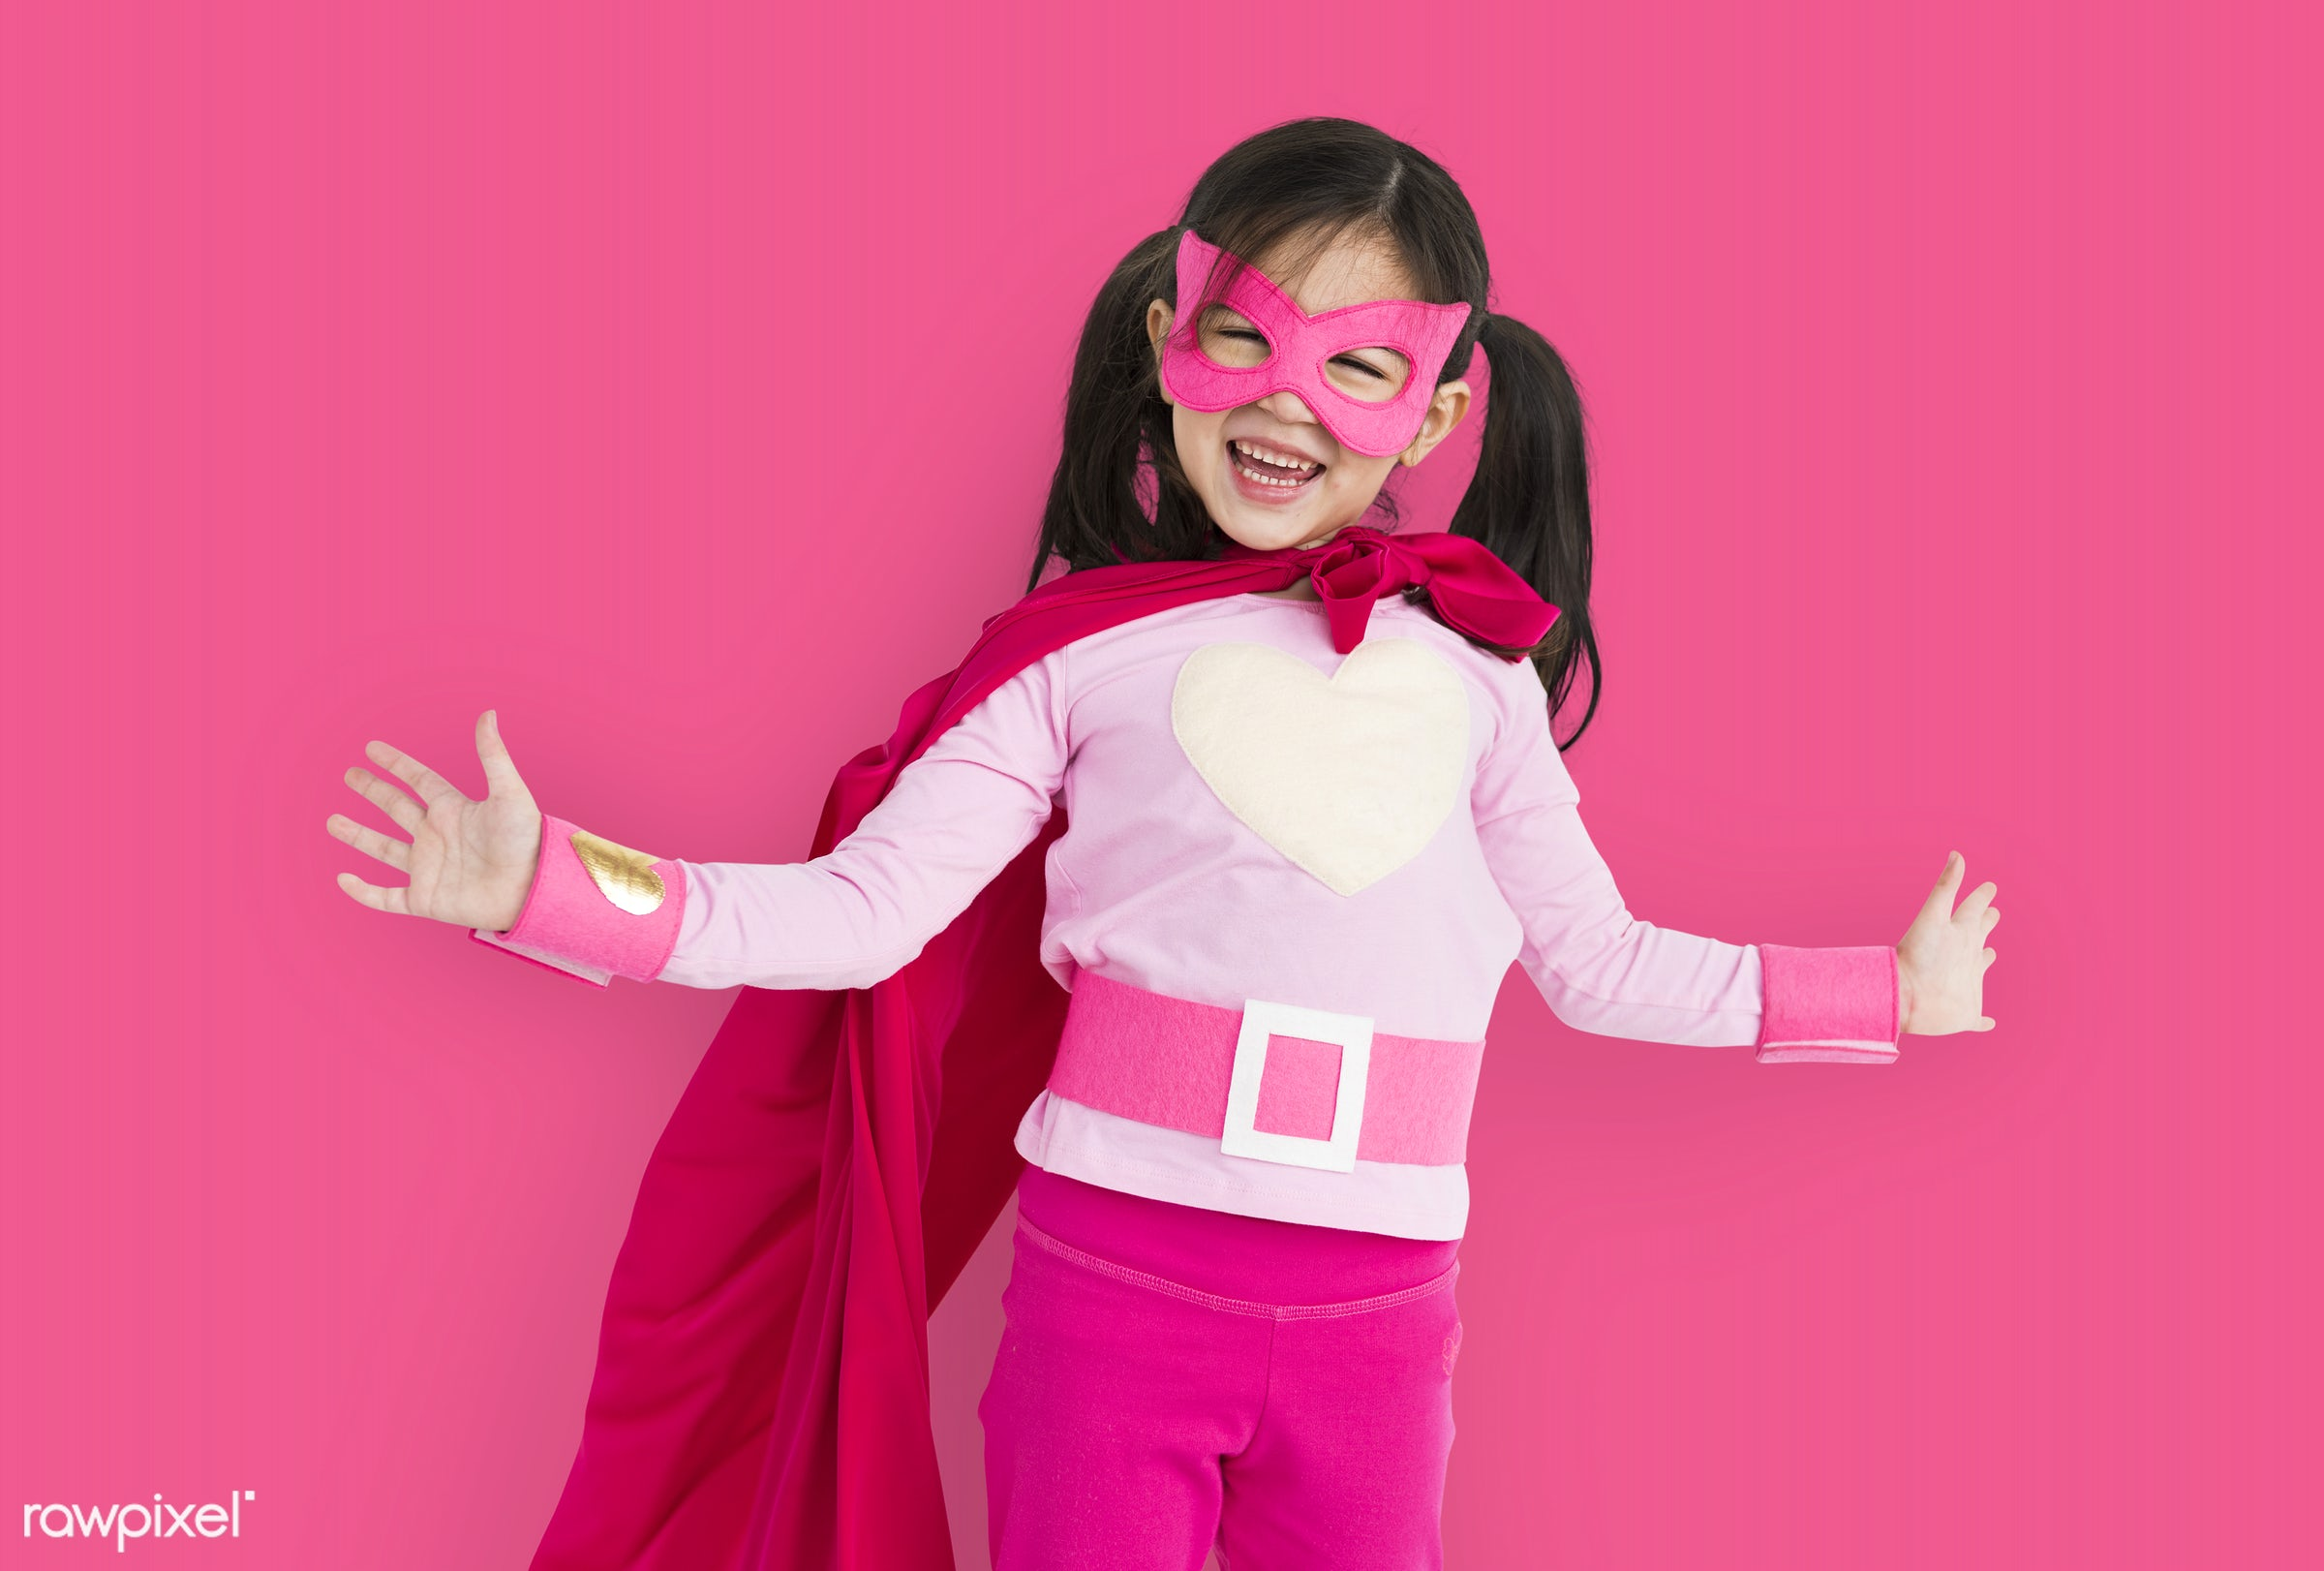 studio, person, model, children, race, people, kid, asian, child, girl, style, solo, lifestyle, casual, pink, superhero,...